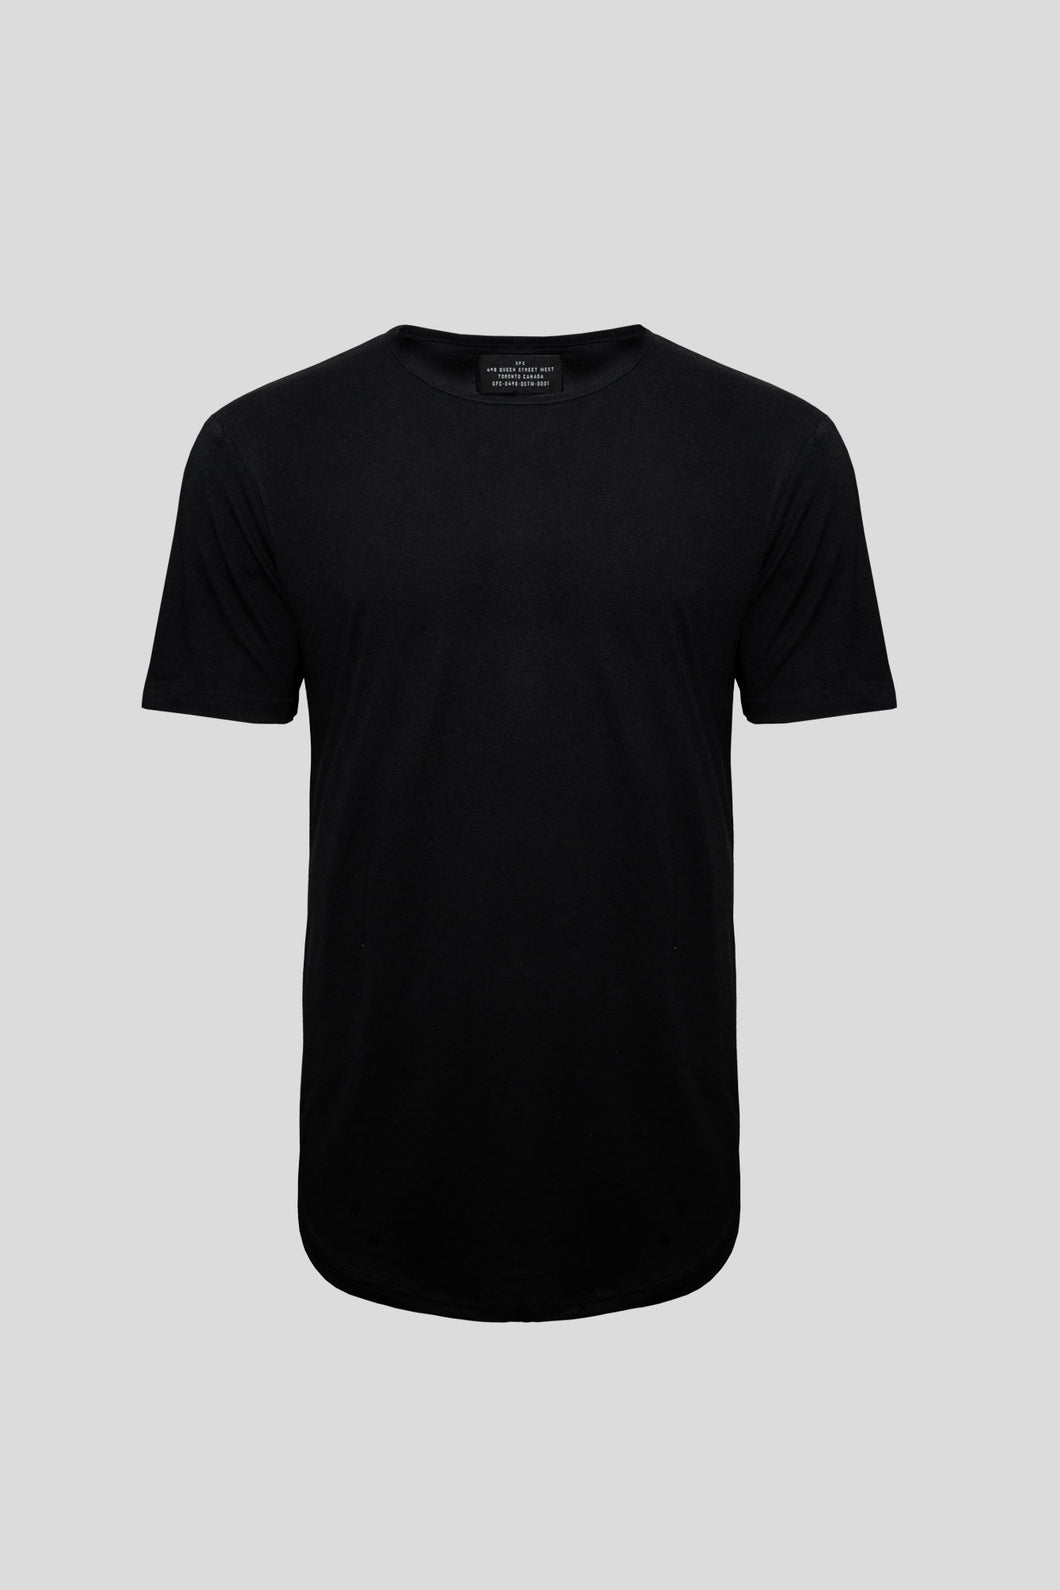 Barebones by GFC - Bamboo Scoop Tee - Black